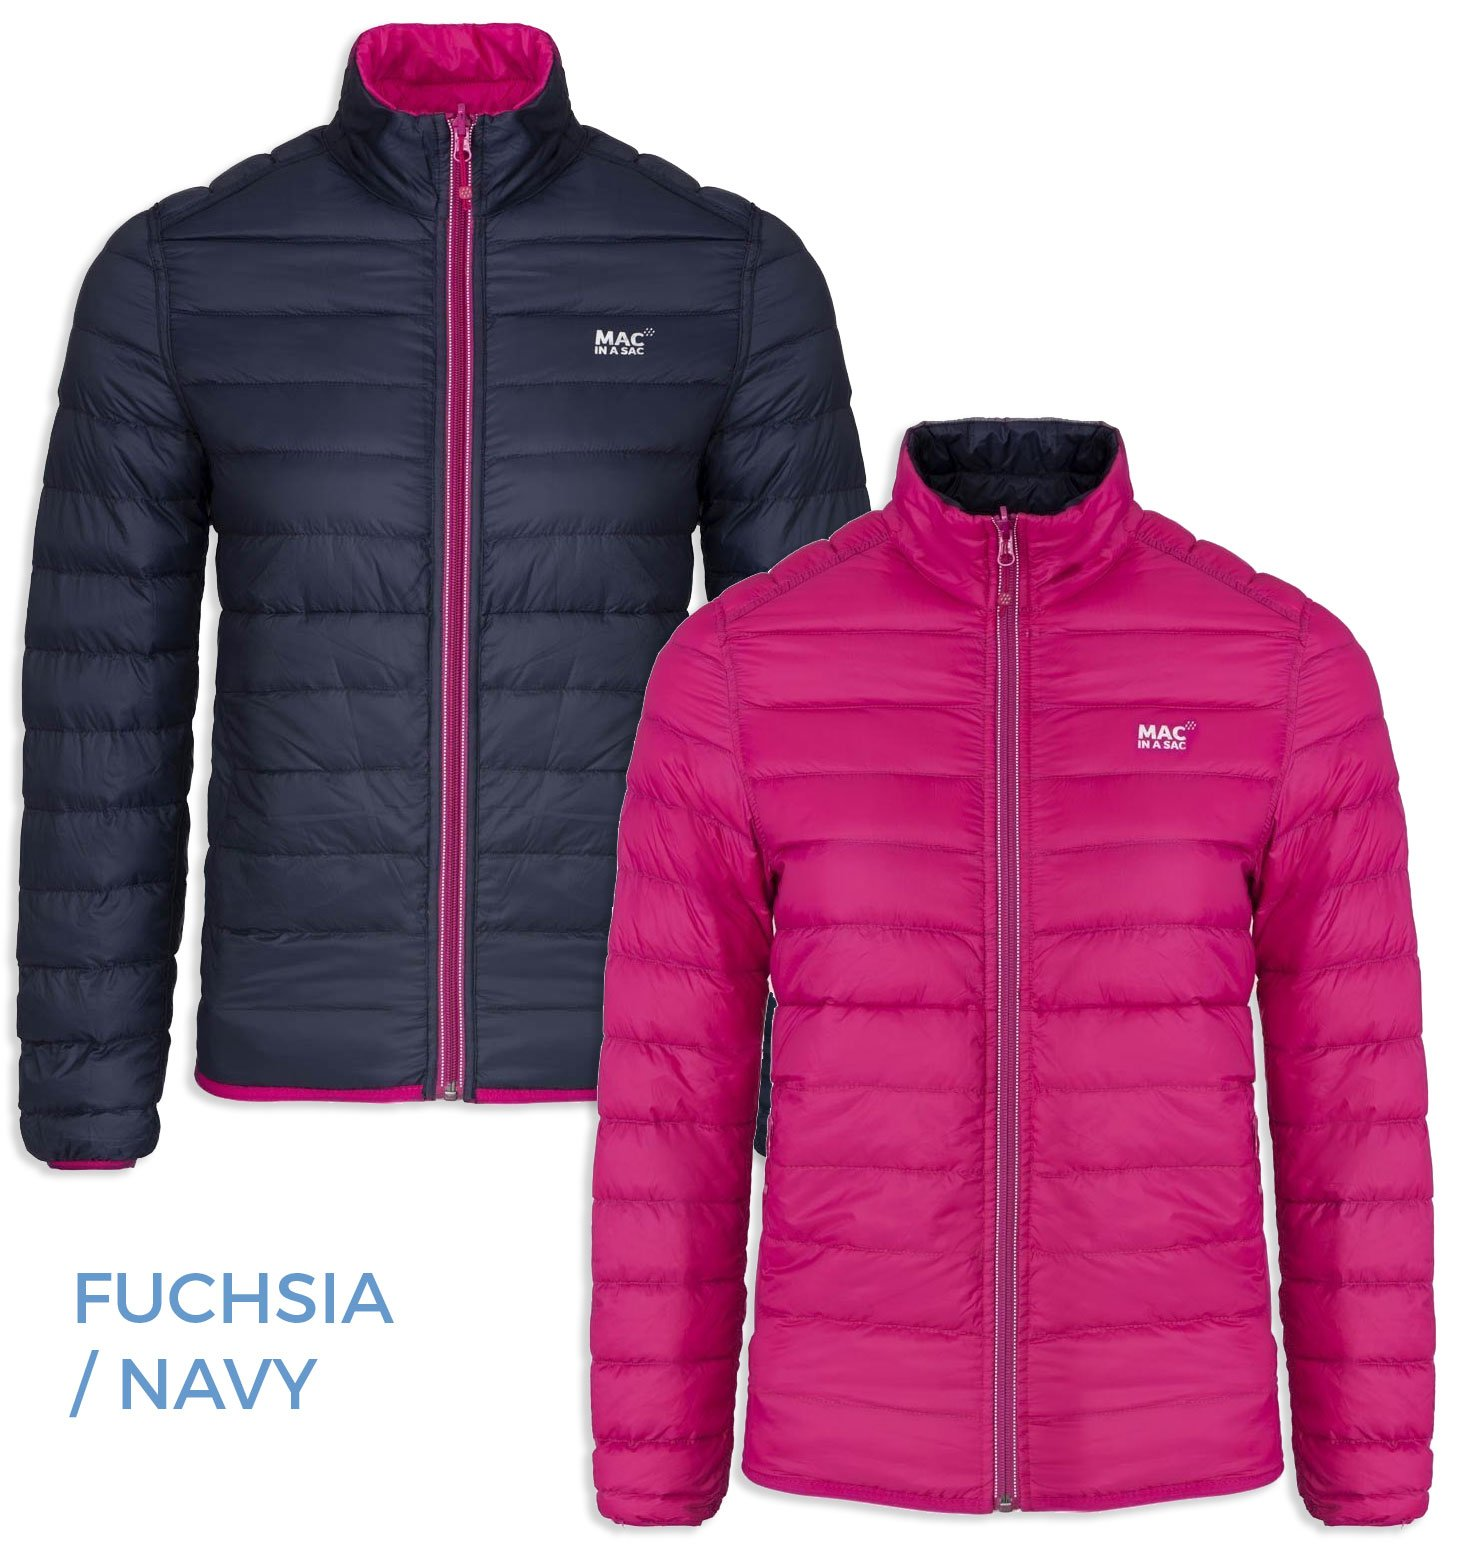 Mac in a Sac Ladies POLAR DOWN 90/10 Highly Waterproof & Breathable Packaway Jacket FUCHSIA